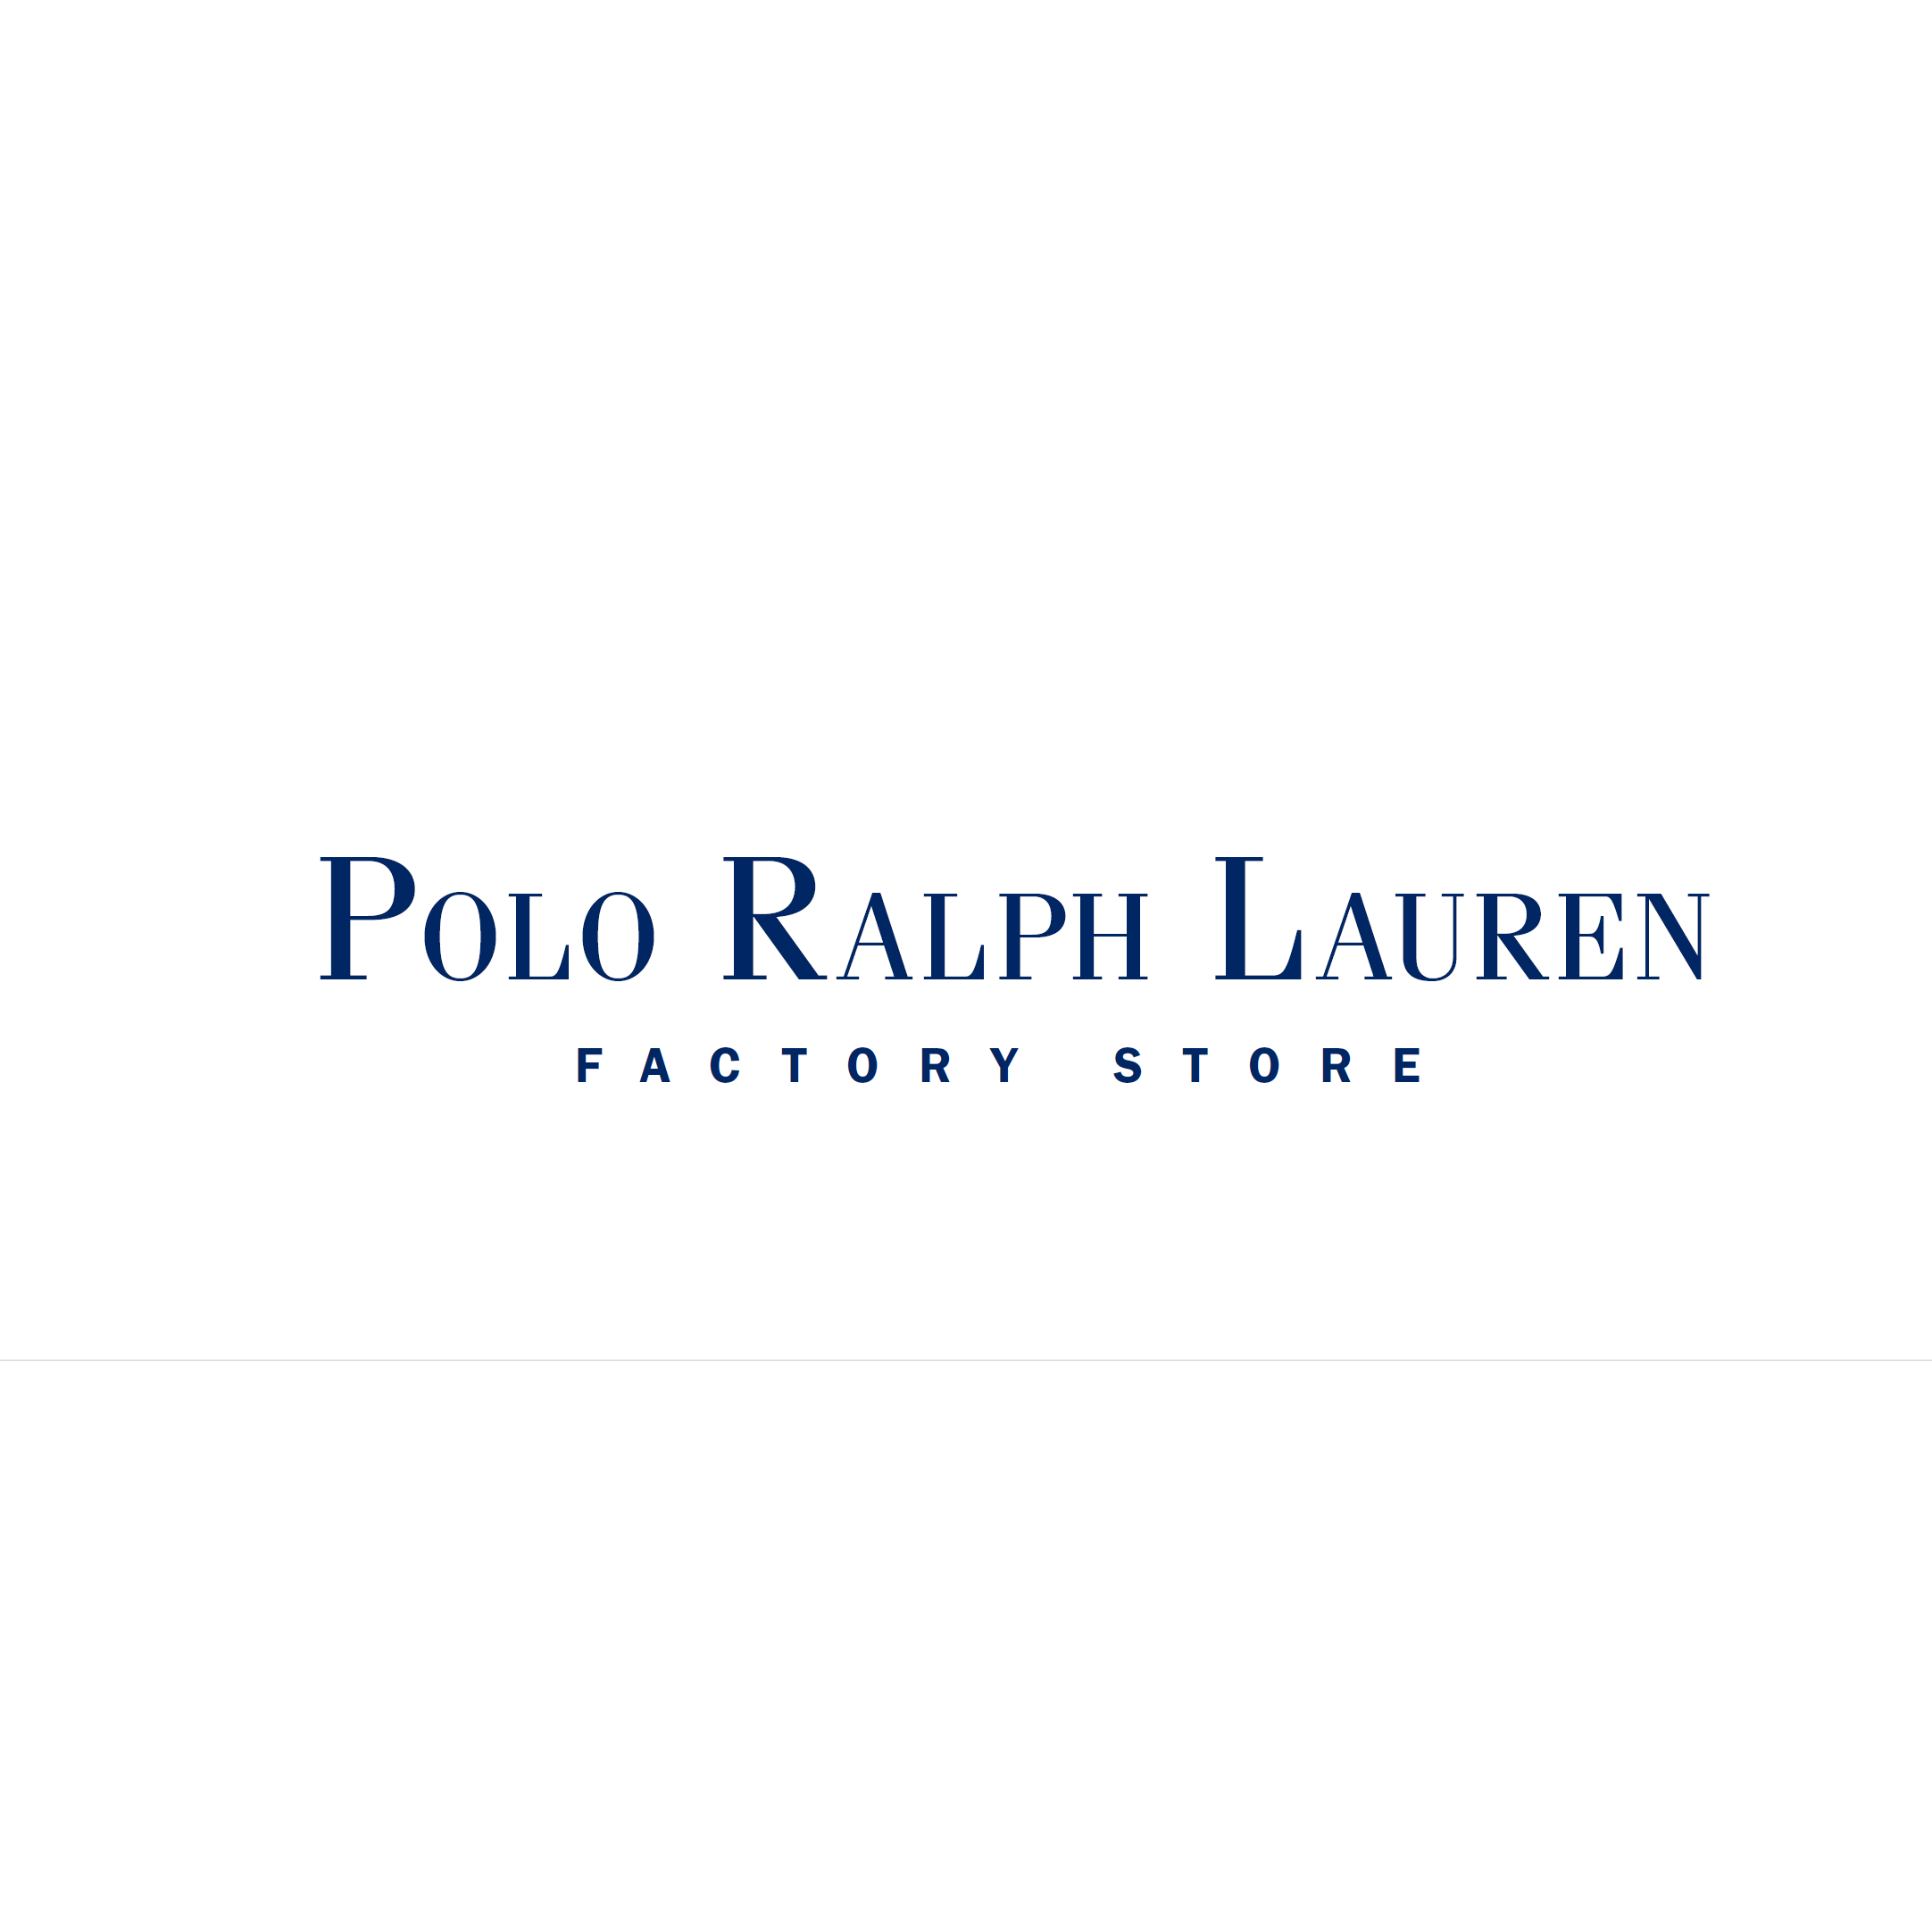 Polo Ralph Lauren Big and Tall Factory Store